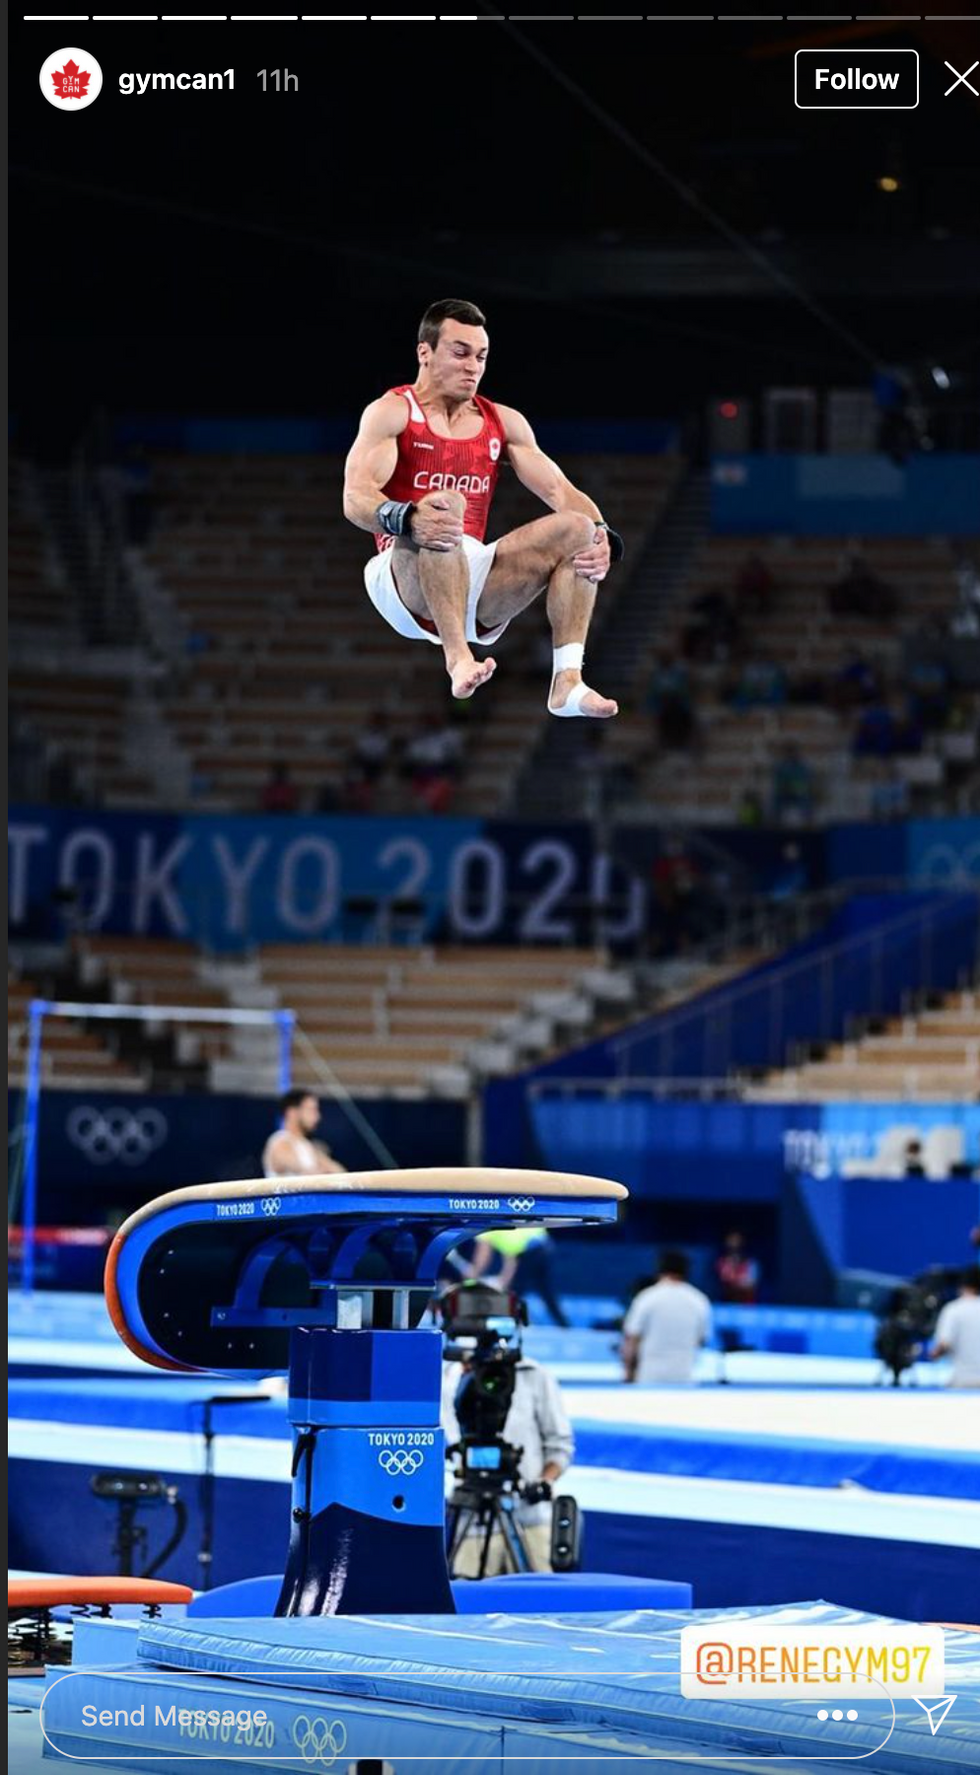 6 Photos Of Quebec Gymnast Rene Cournoyer Blowing Our Minds At The Tokyo Olympics